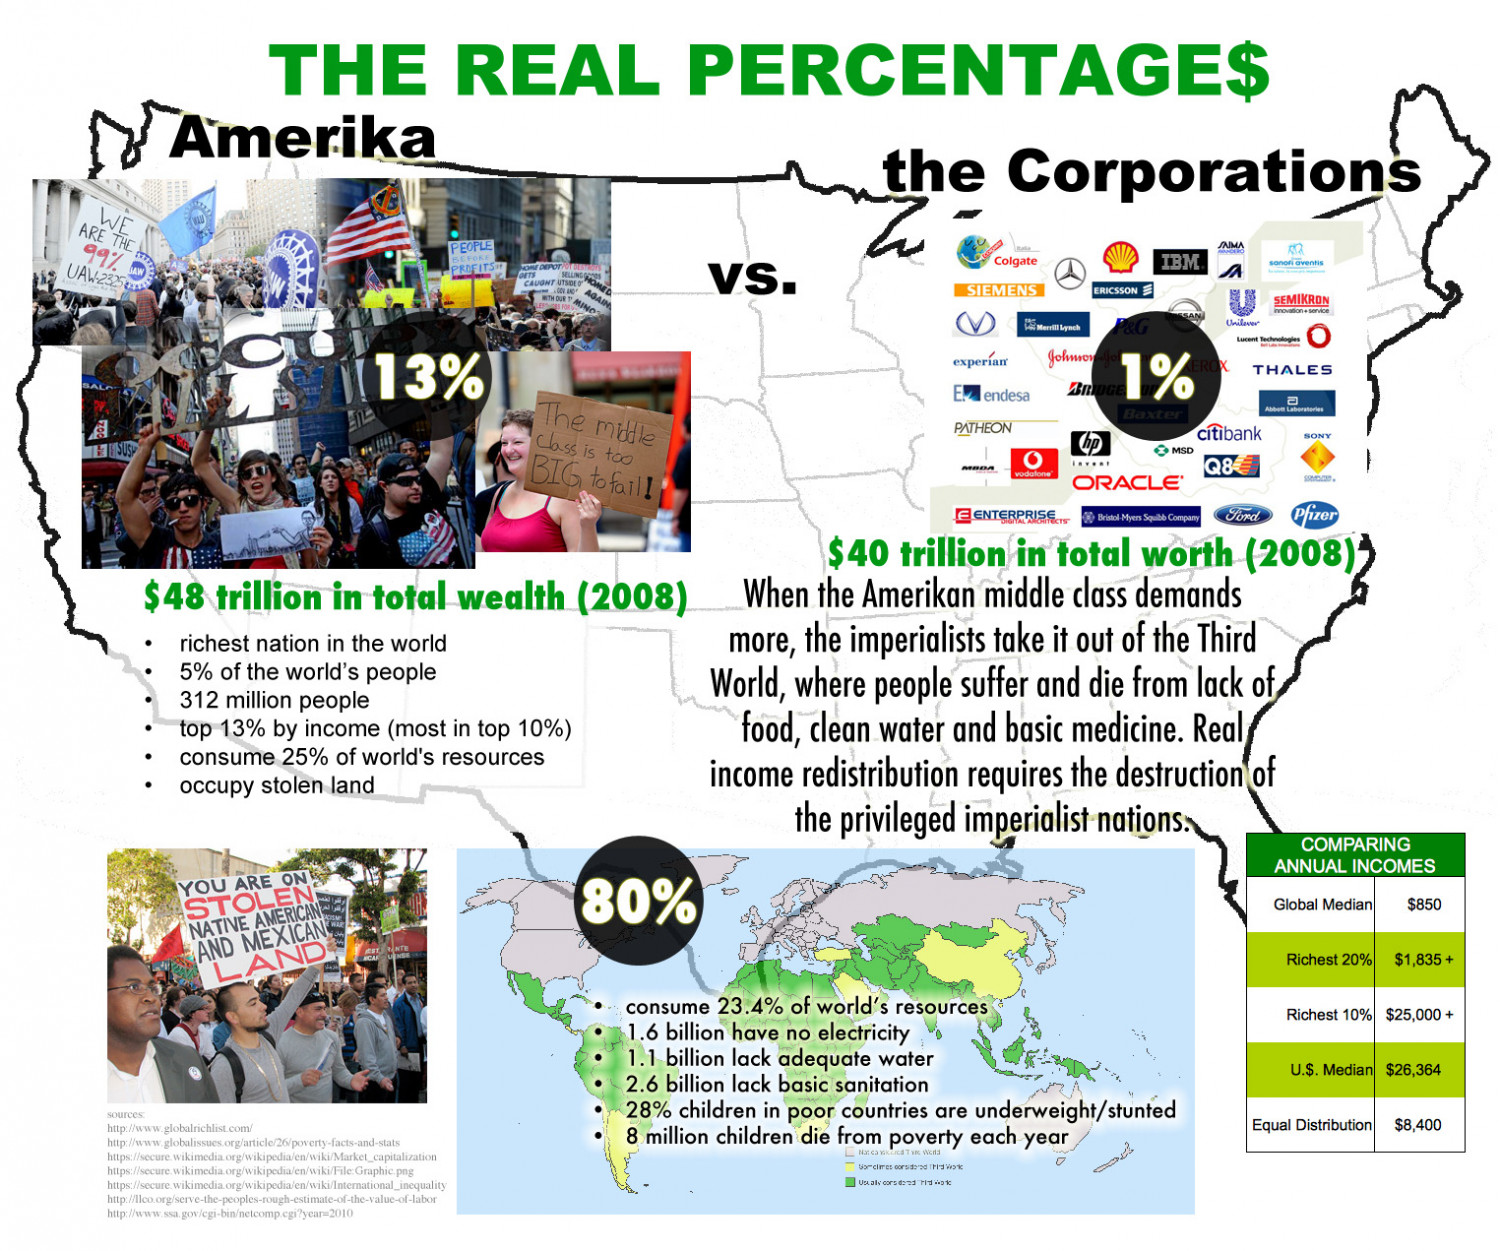 Americans are the Top 13 Percent Infographic